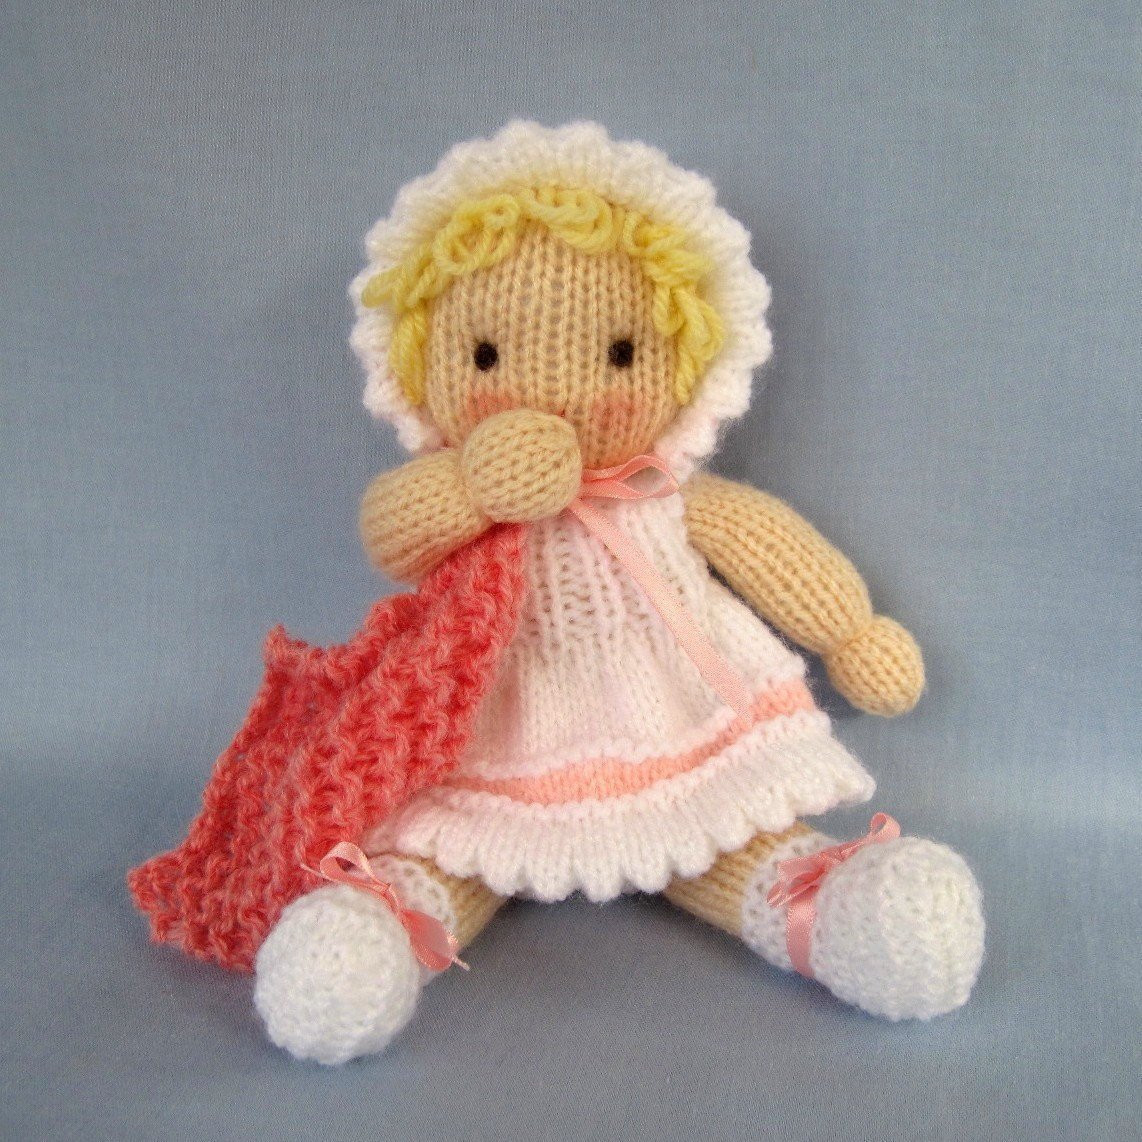 Inspirational Knit Patterns for Dolls Free Patterns Knitted Doll Patterns Of Lovely 40 Models Knitted Doll Patterns